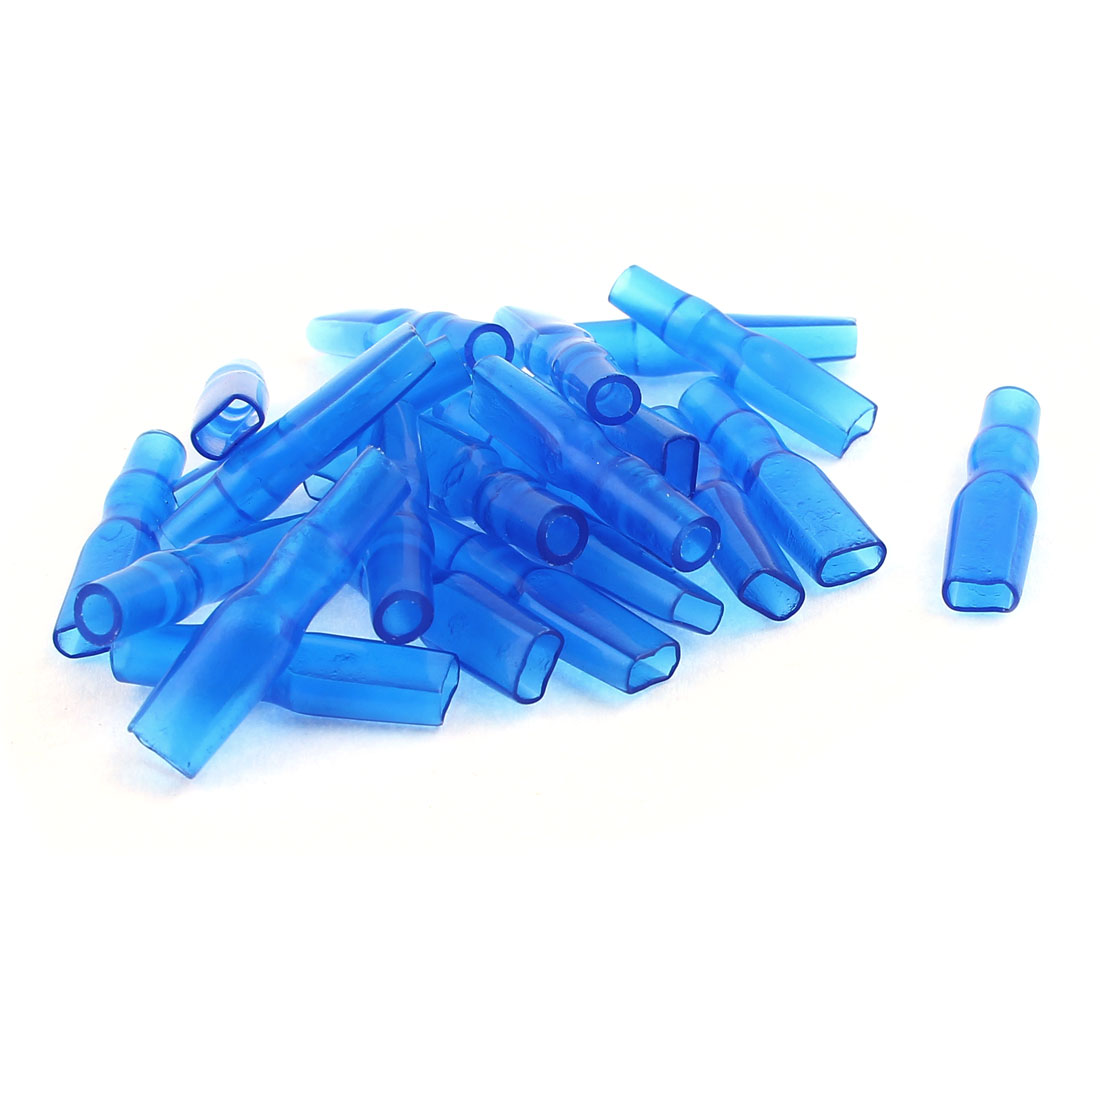 20 Pcs 2.8mm Female Spade Wire Terminal Connector Insulated Cap Sleeve Cover Blue